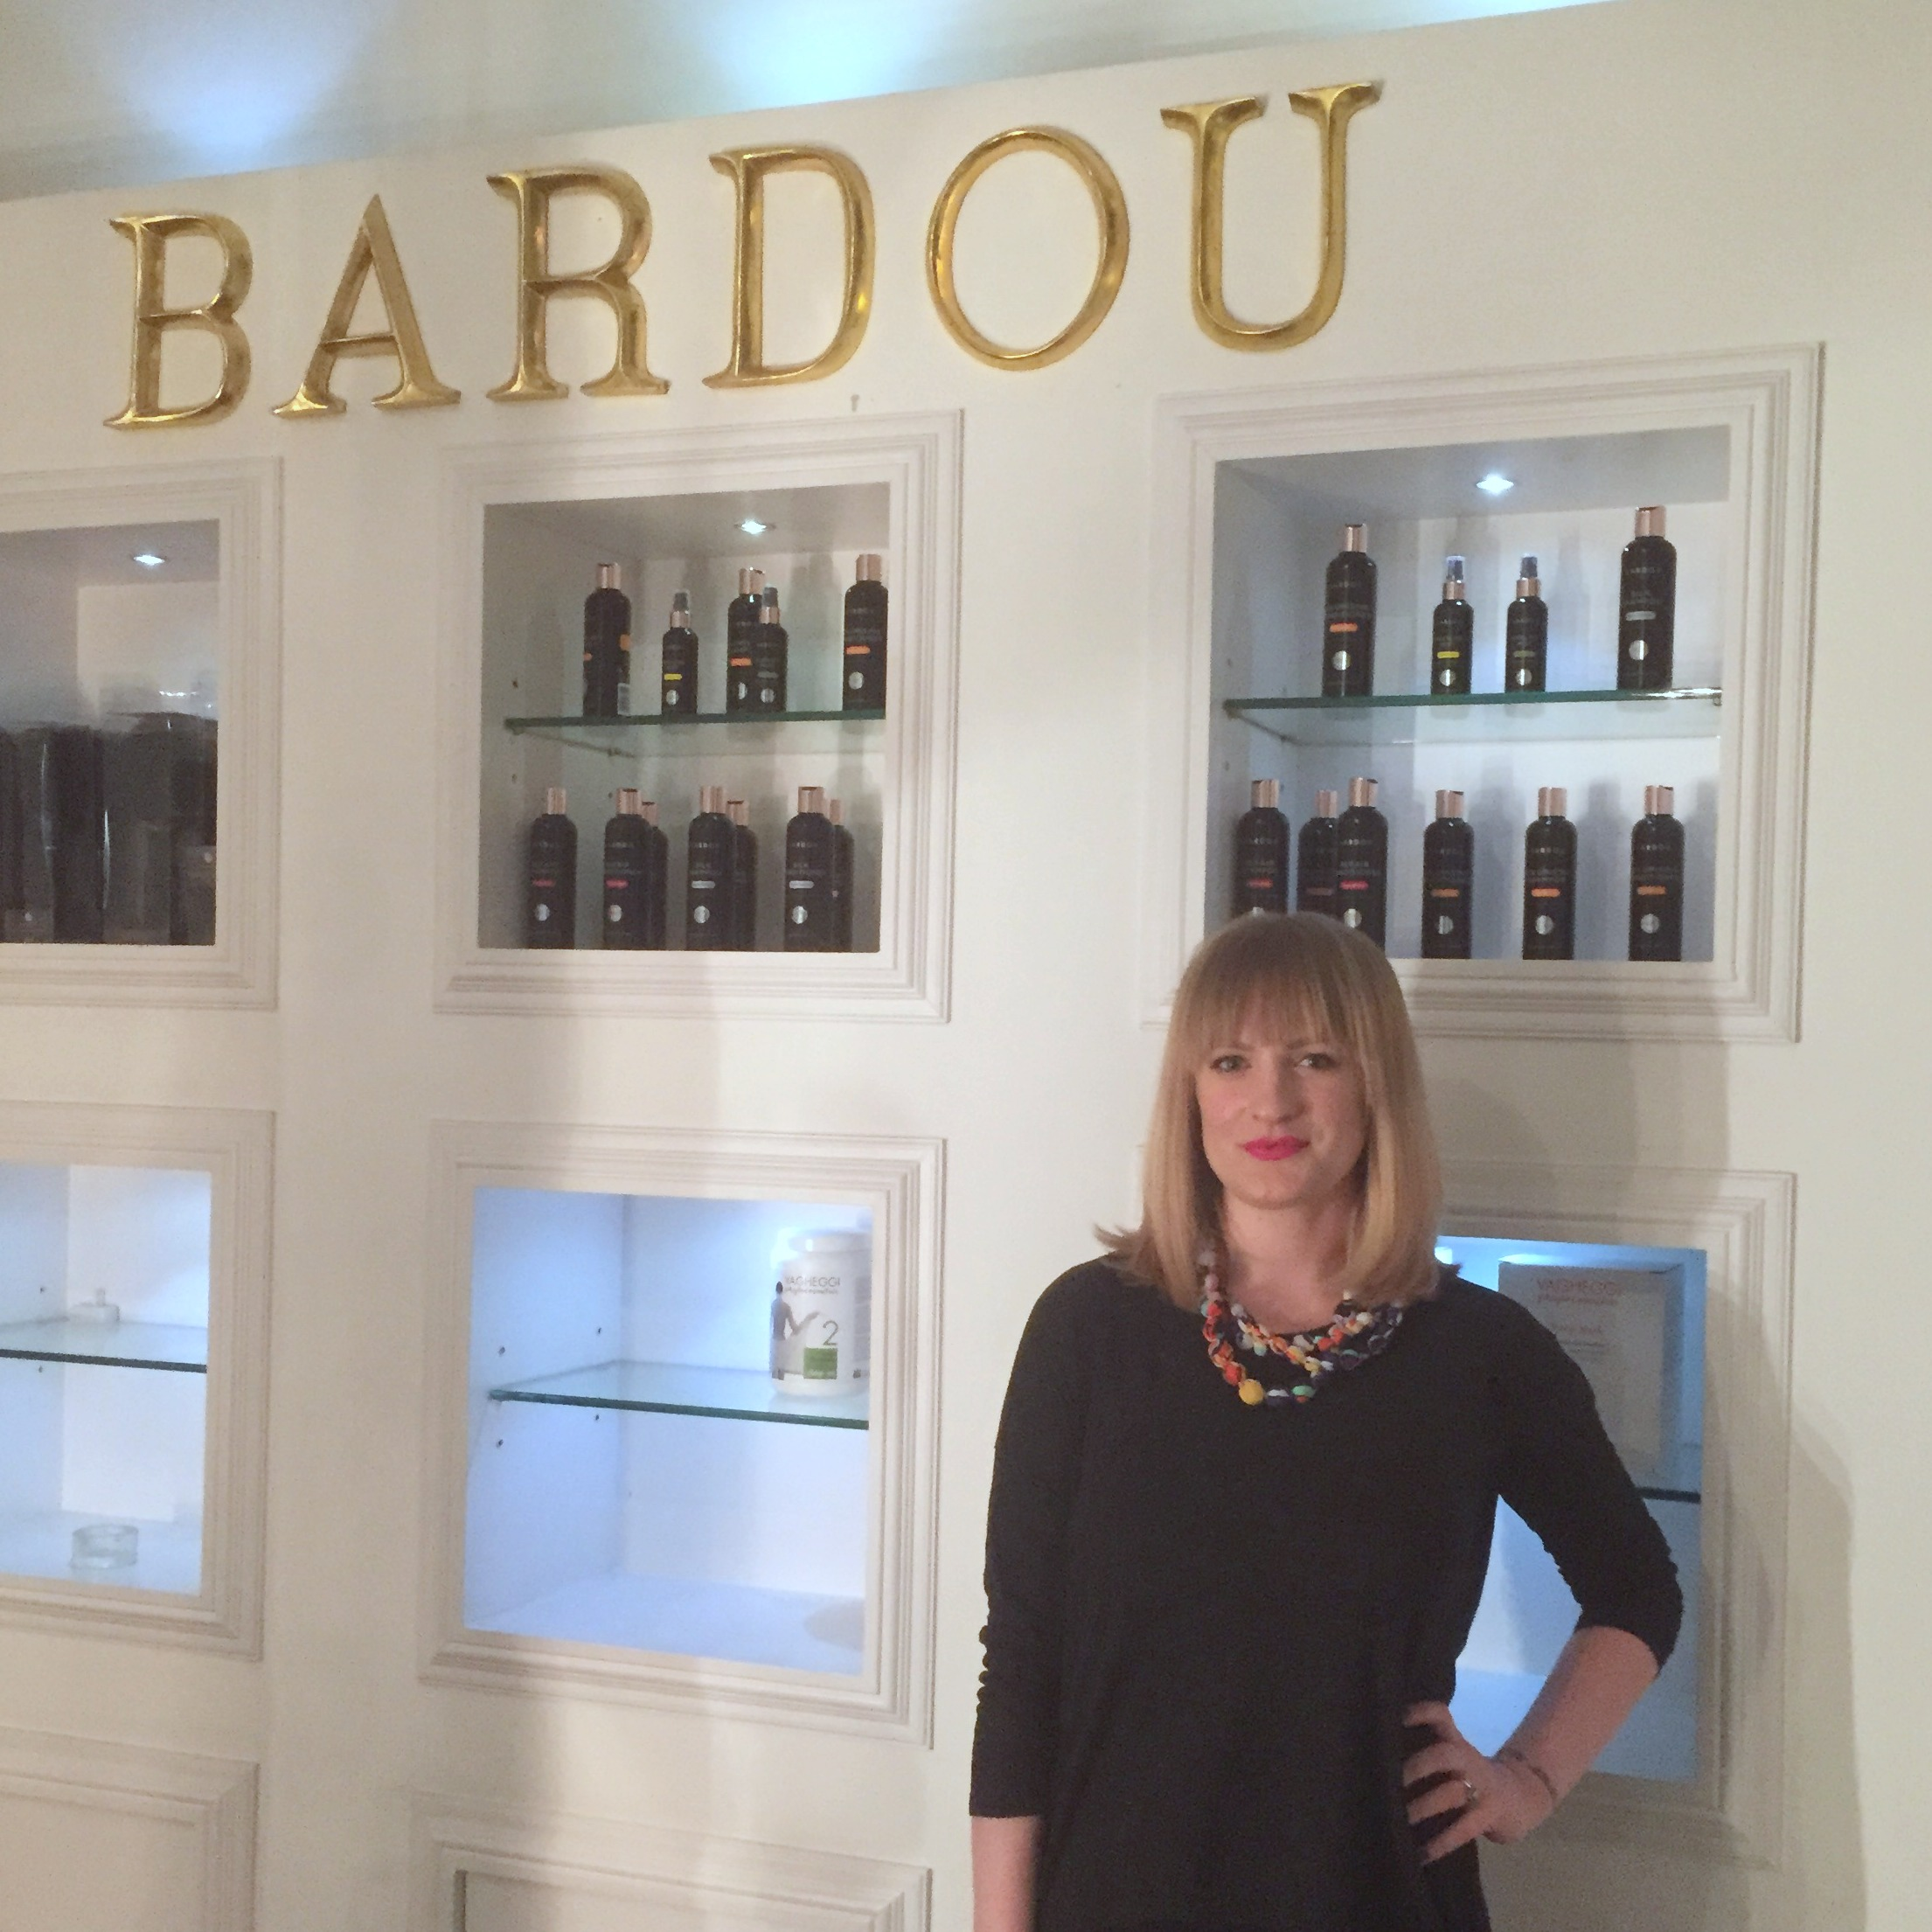 Bardou-Pop-Up-Blow-Dry-Salon-Kensington-Review-Talonted-Lex